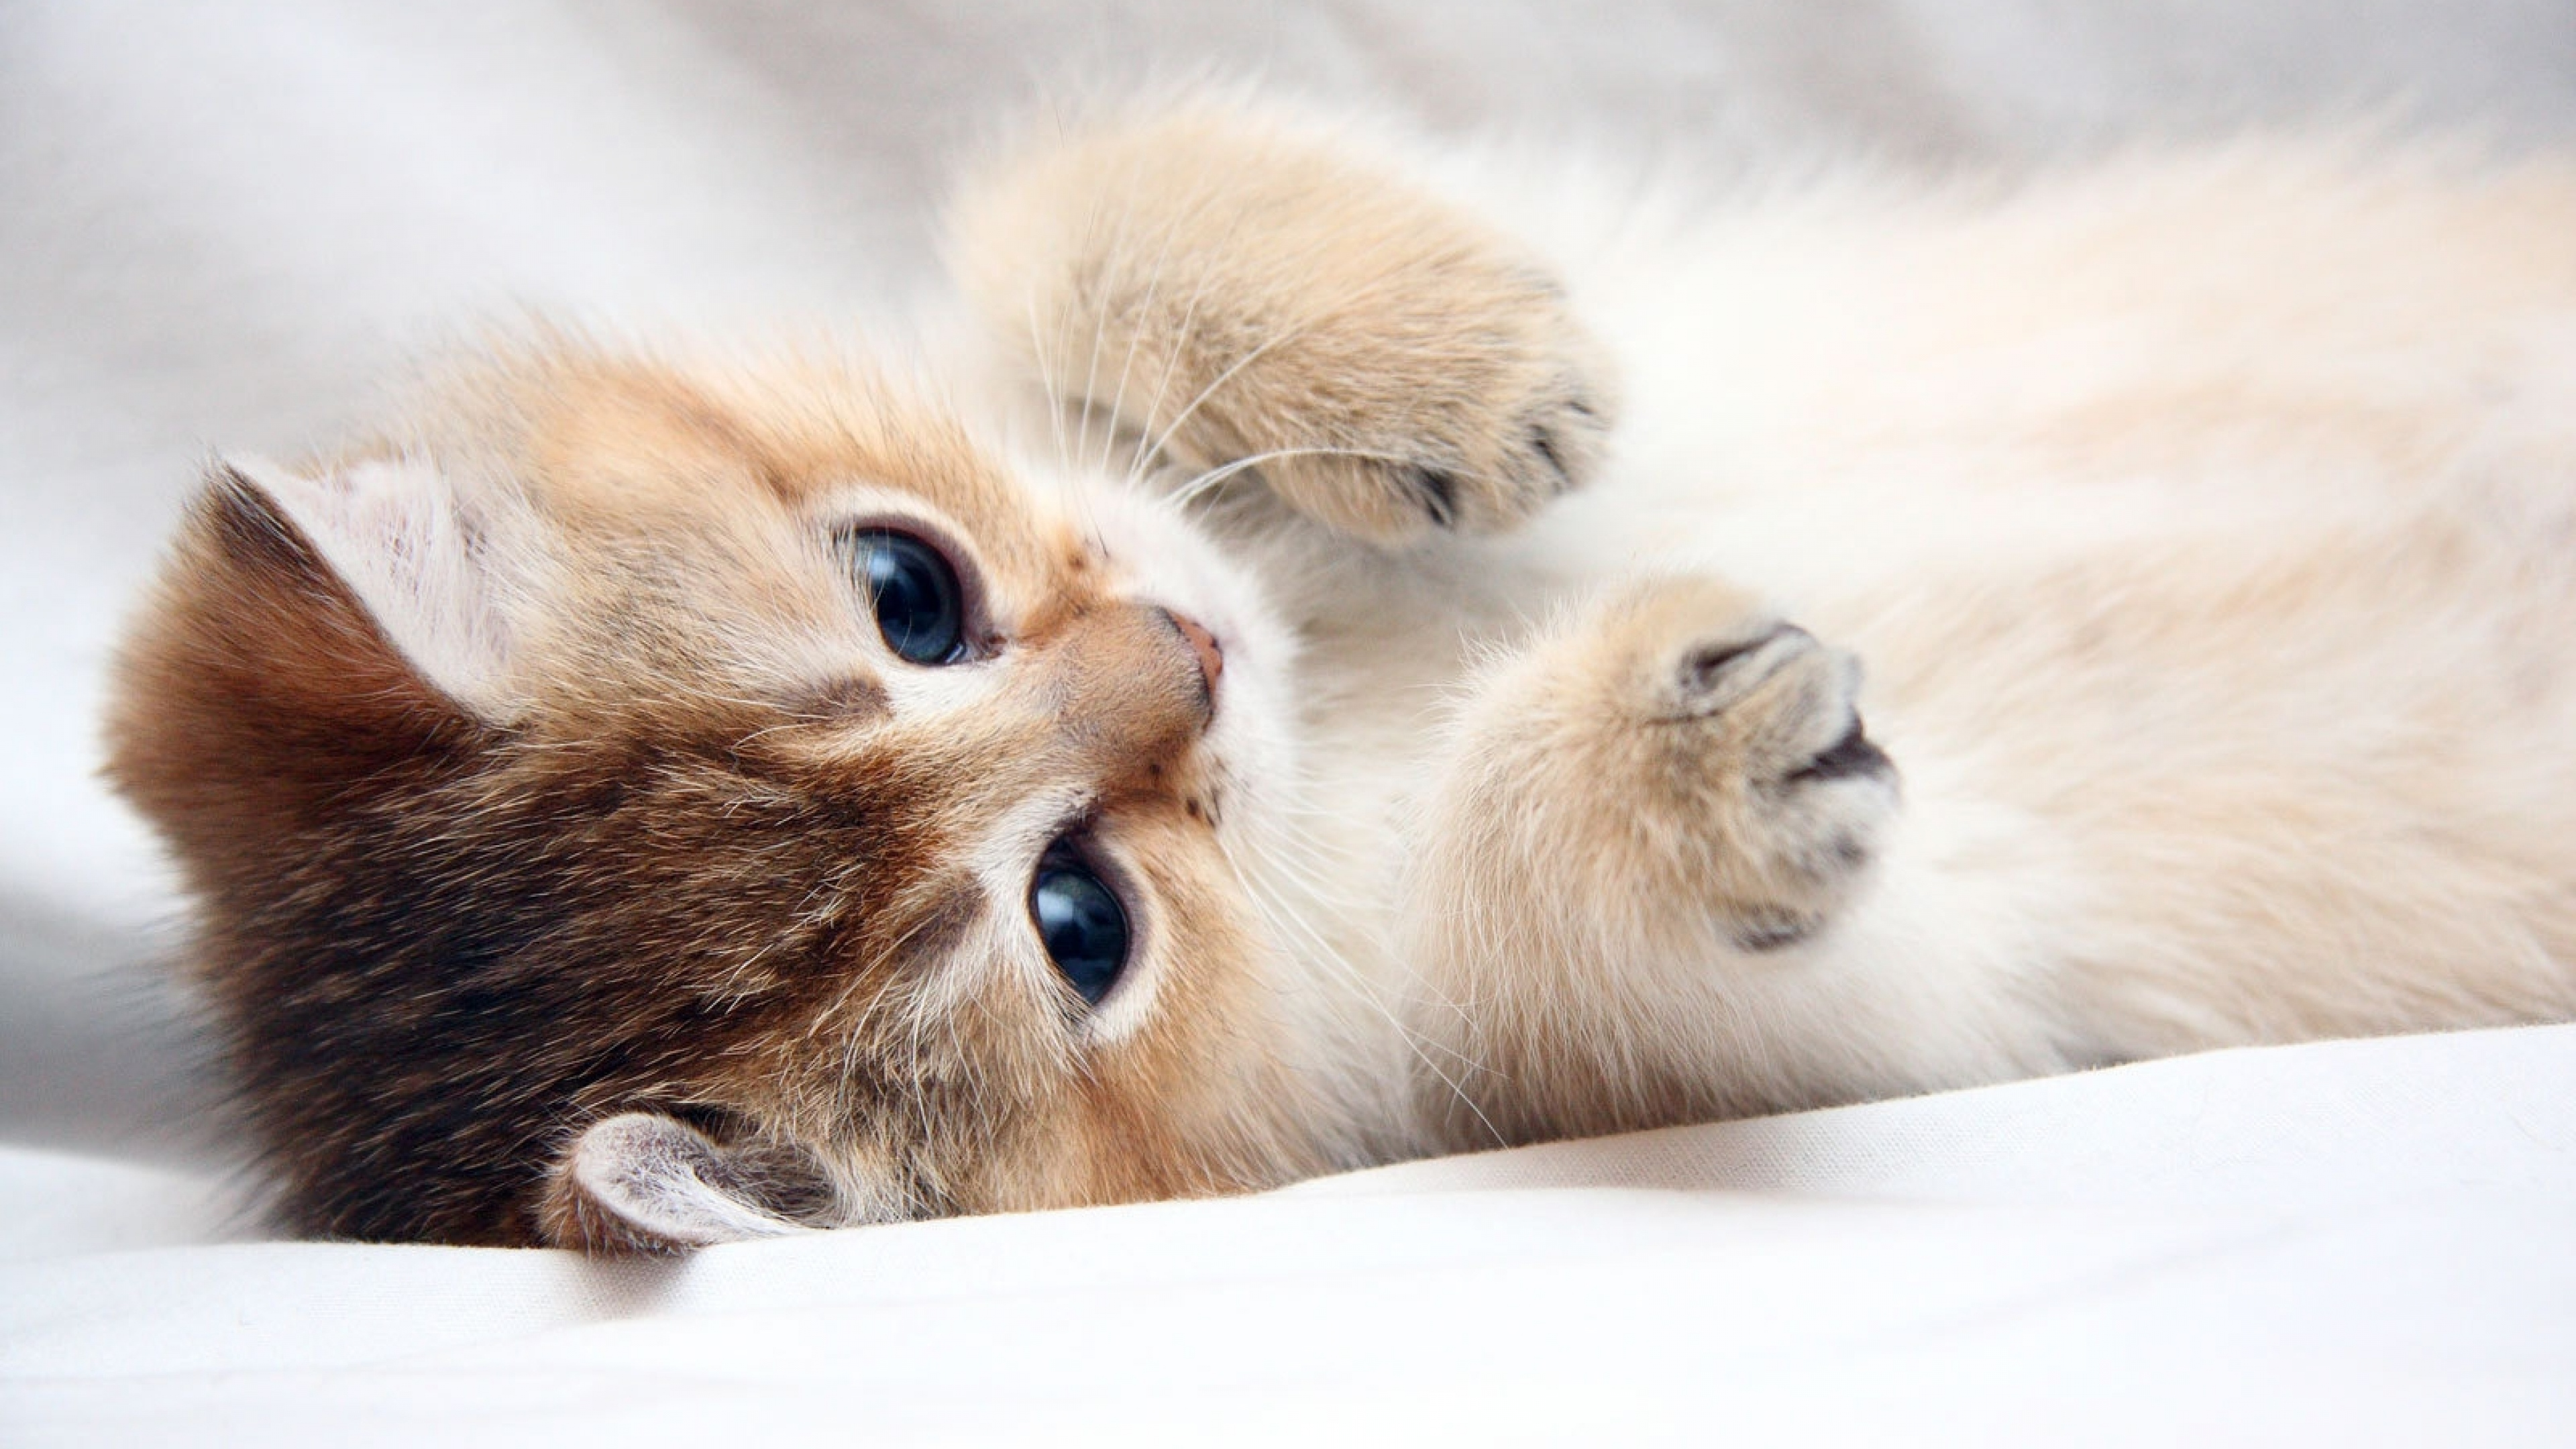 4k cat wallpapers high quality | download free